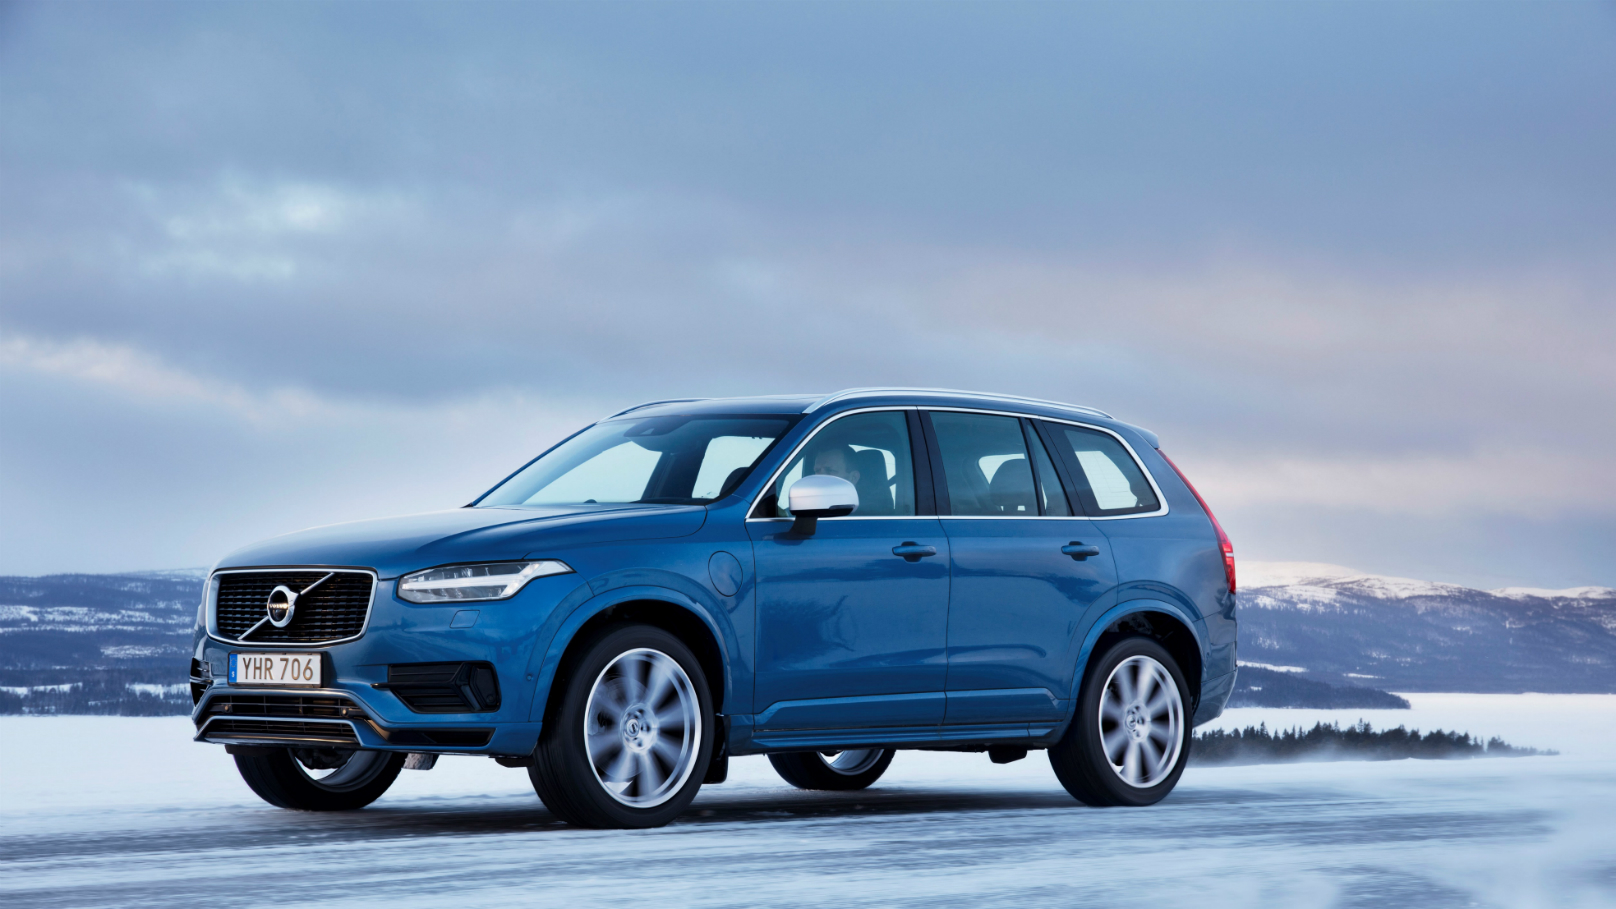 Least Reliable Cars 2017 Volvo XC90